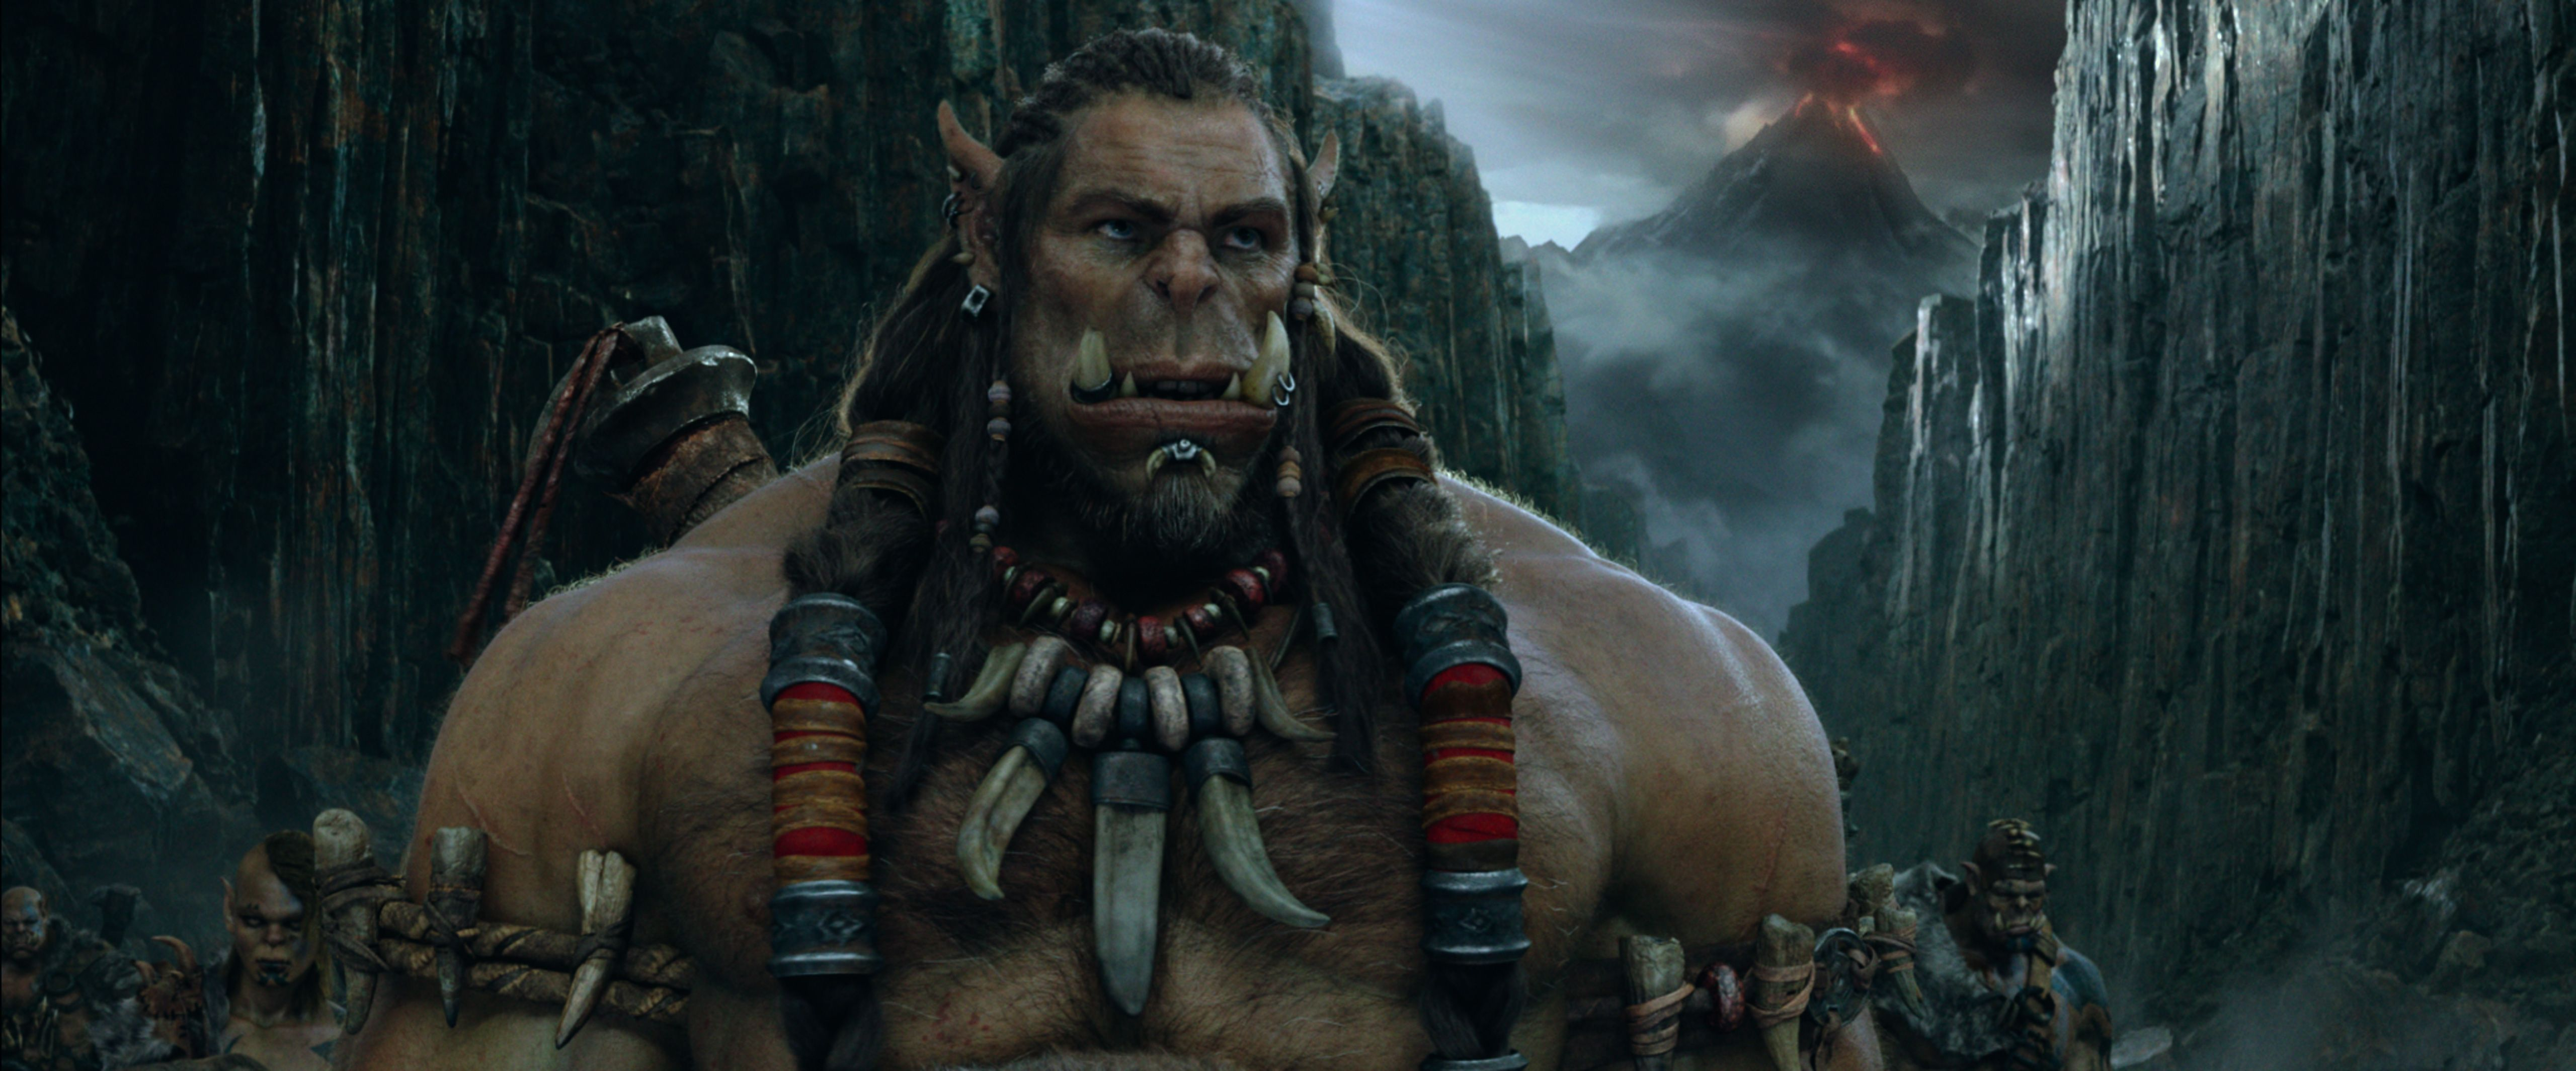 Warcraft Movie Images Feature Orcs Humans And A Hybrid Collider